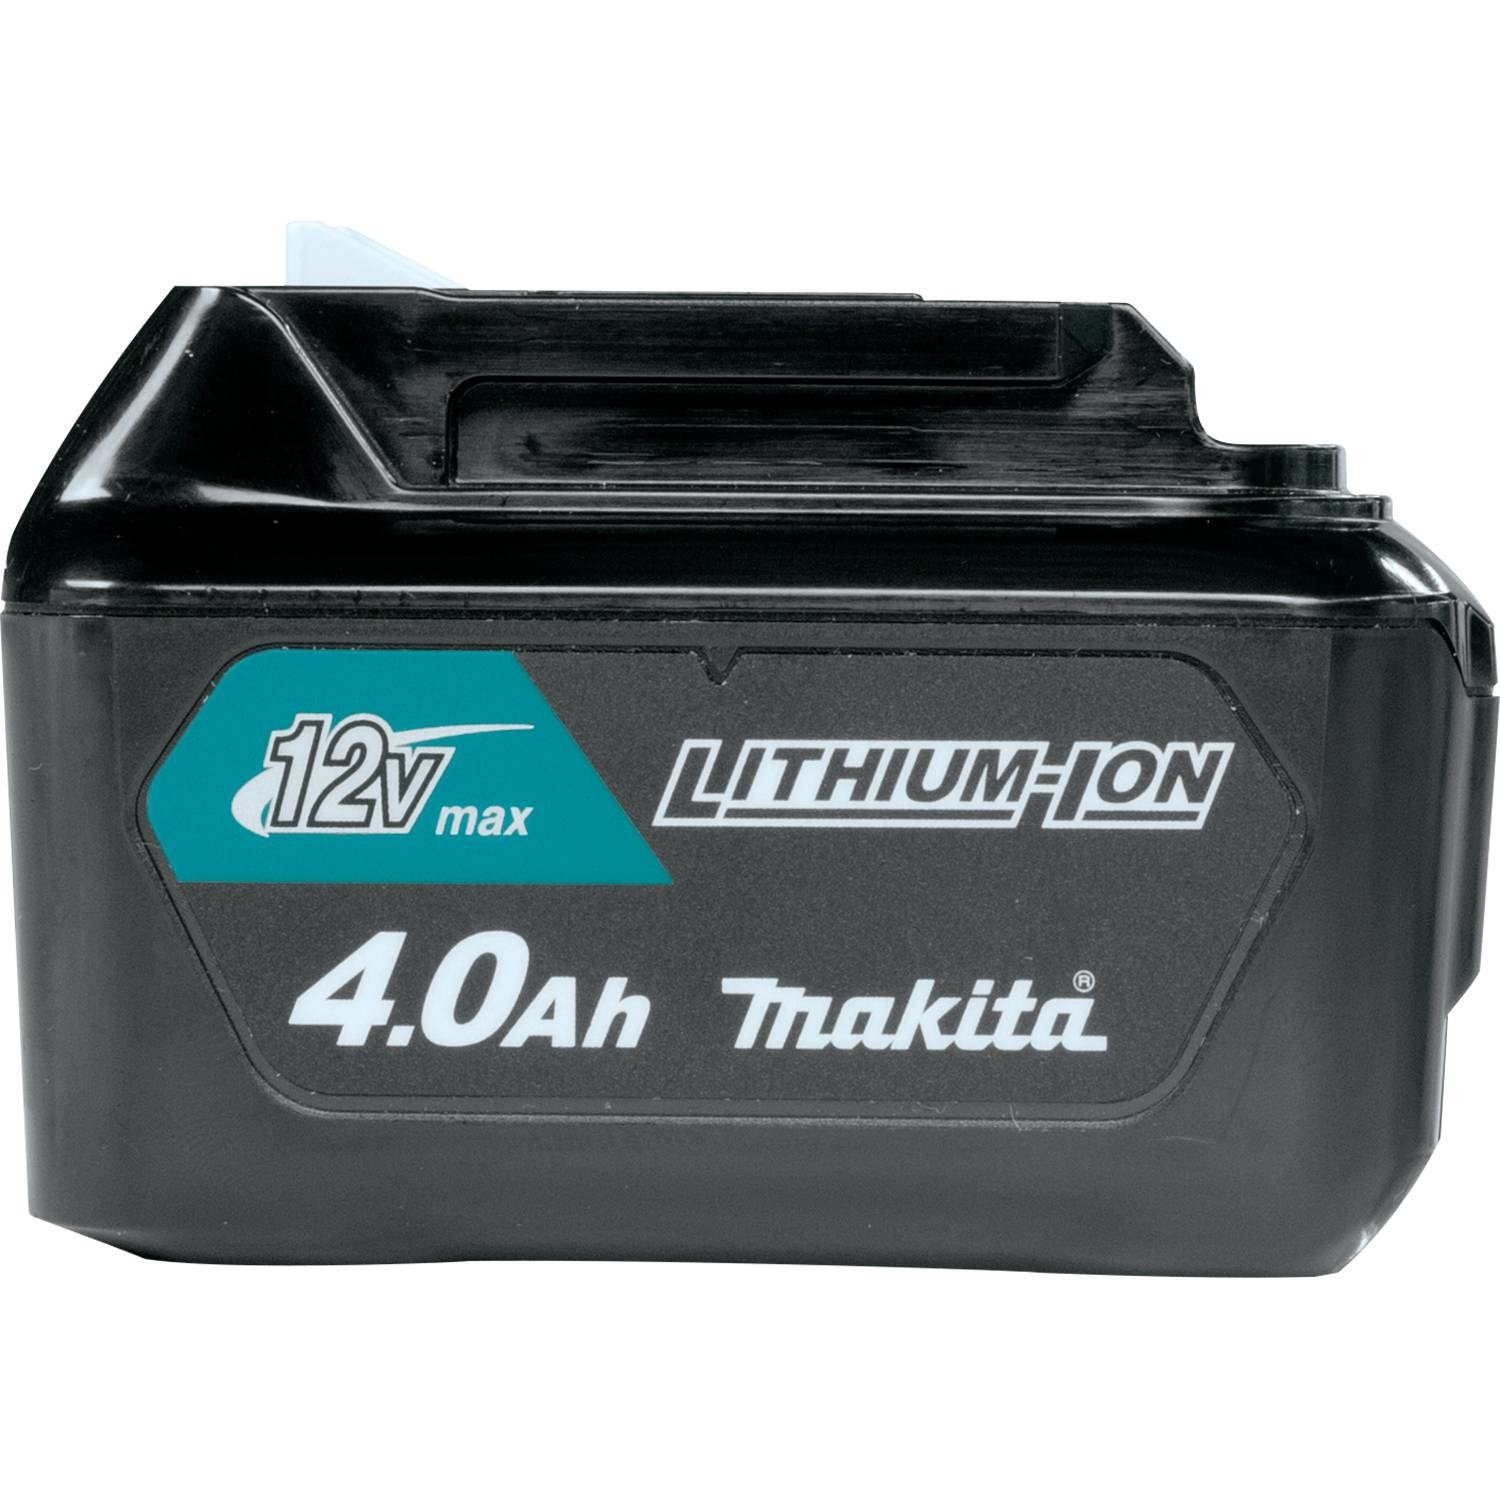 Makita BL1041B-2  12V max CXT Lithium-Ion 4.0 Amp Battery (2 Pack) by Makita (Image #5)